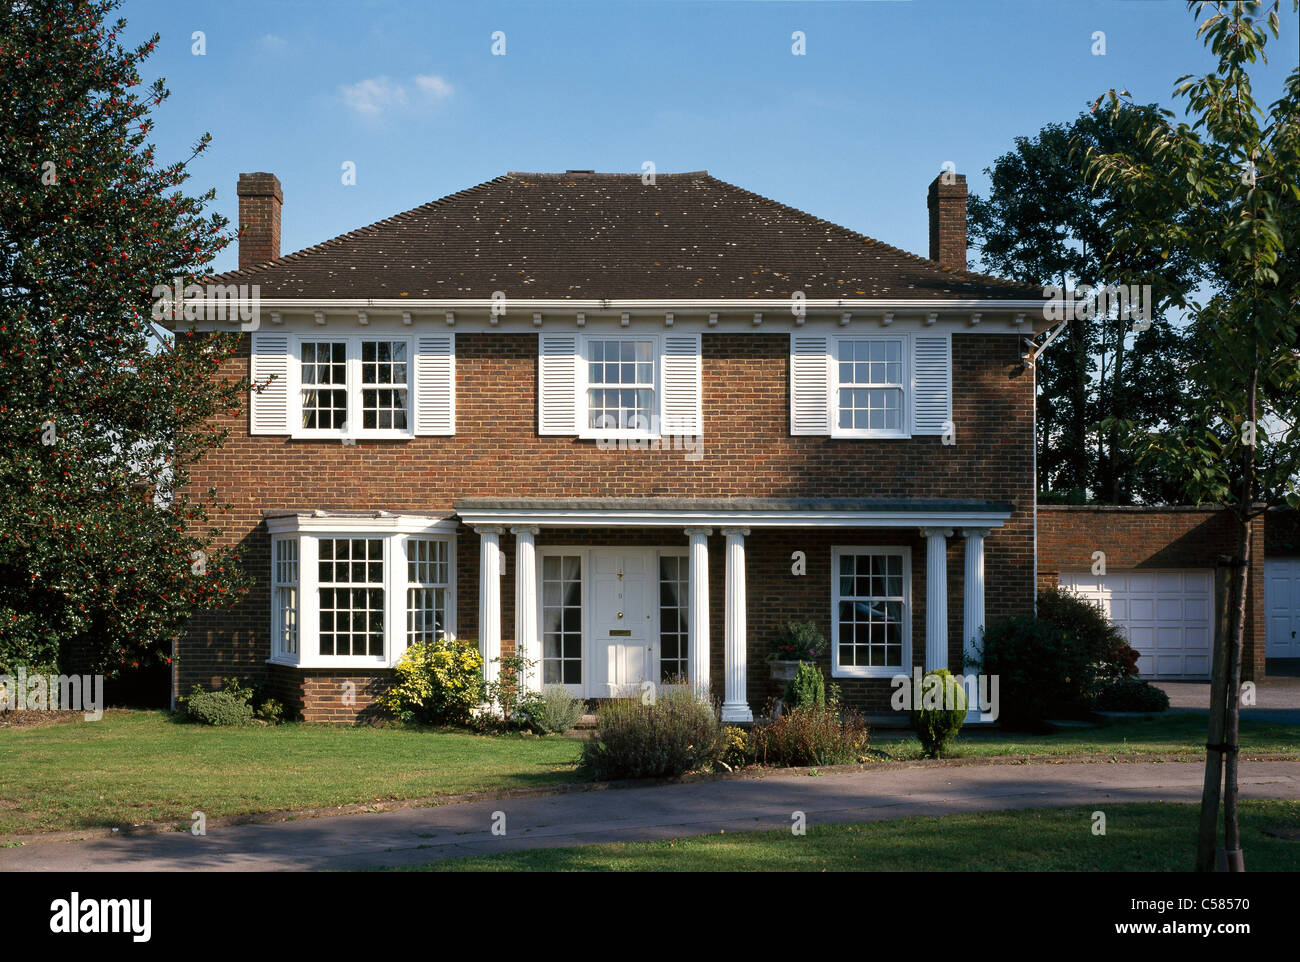 Detached house with portico columns and double garage for Garage portico